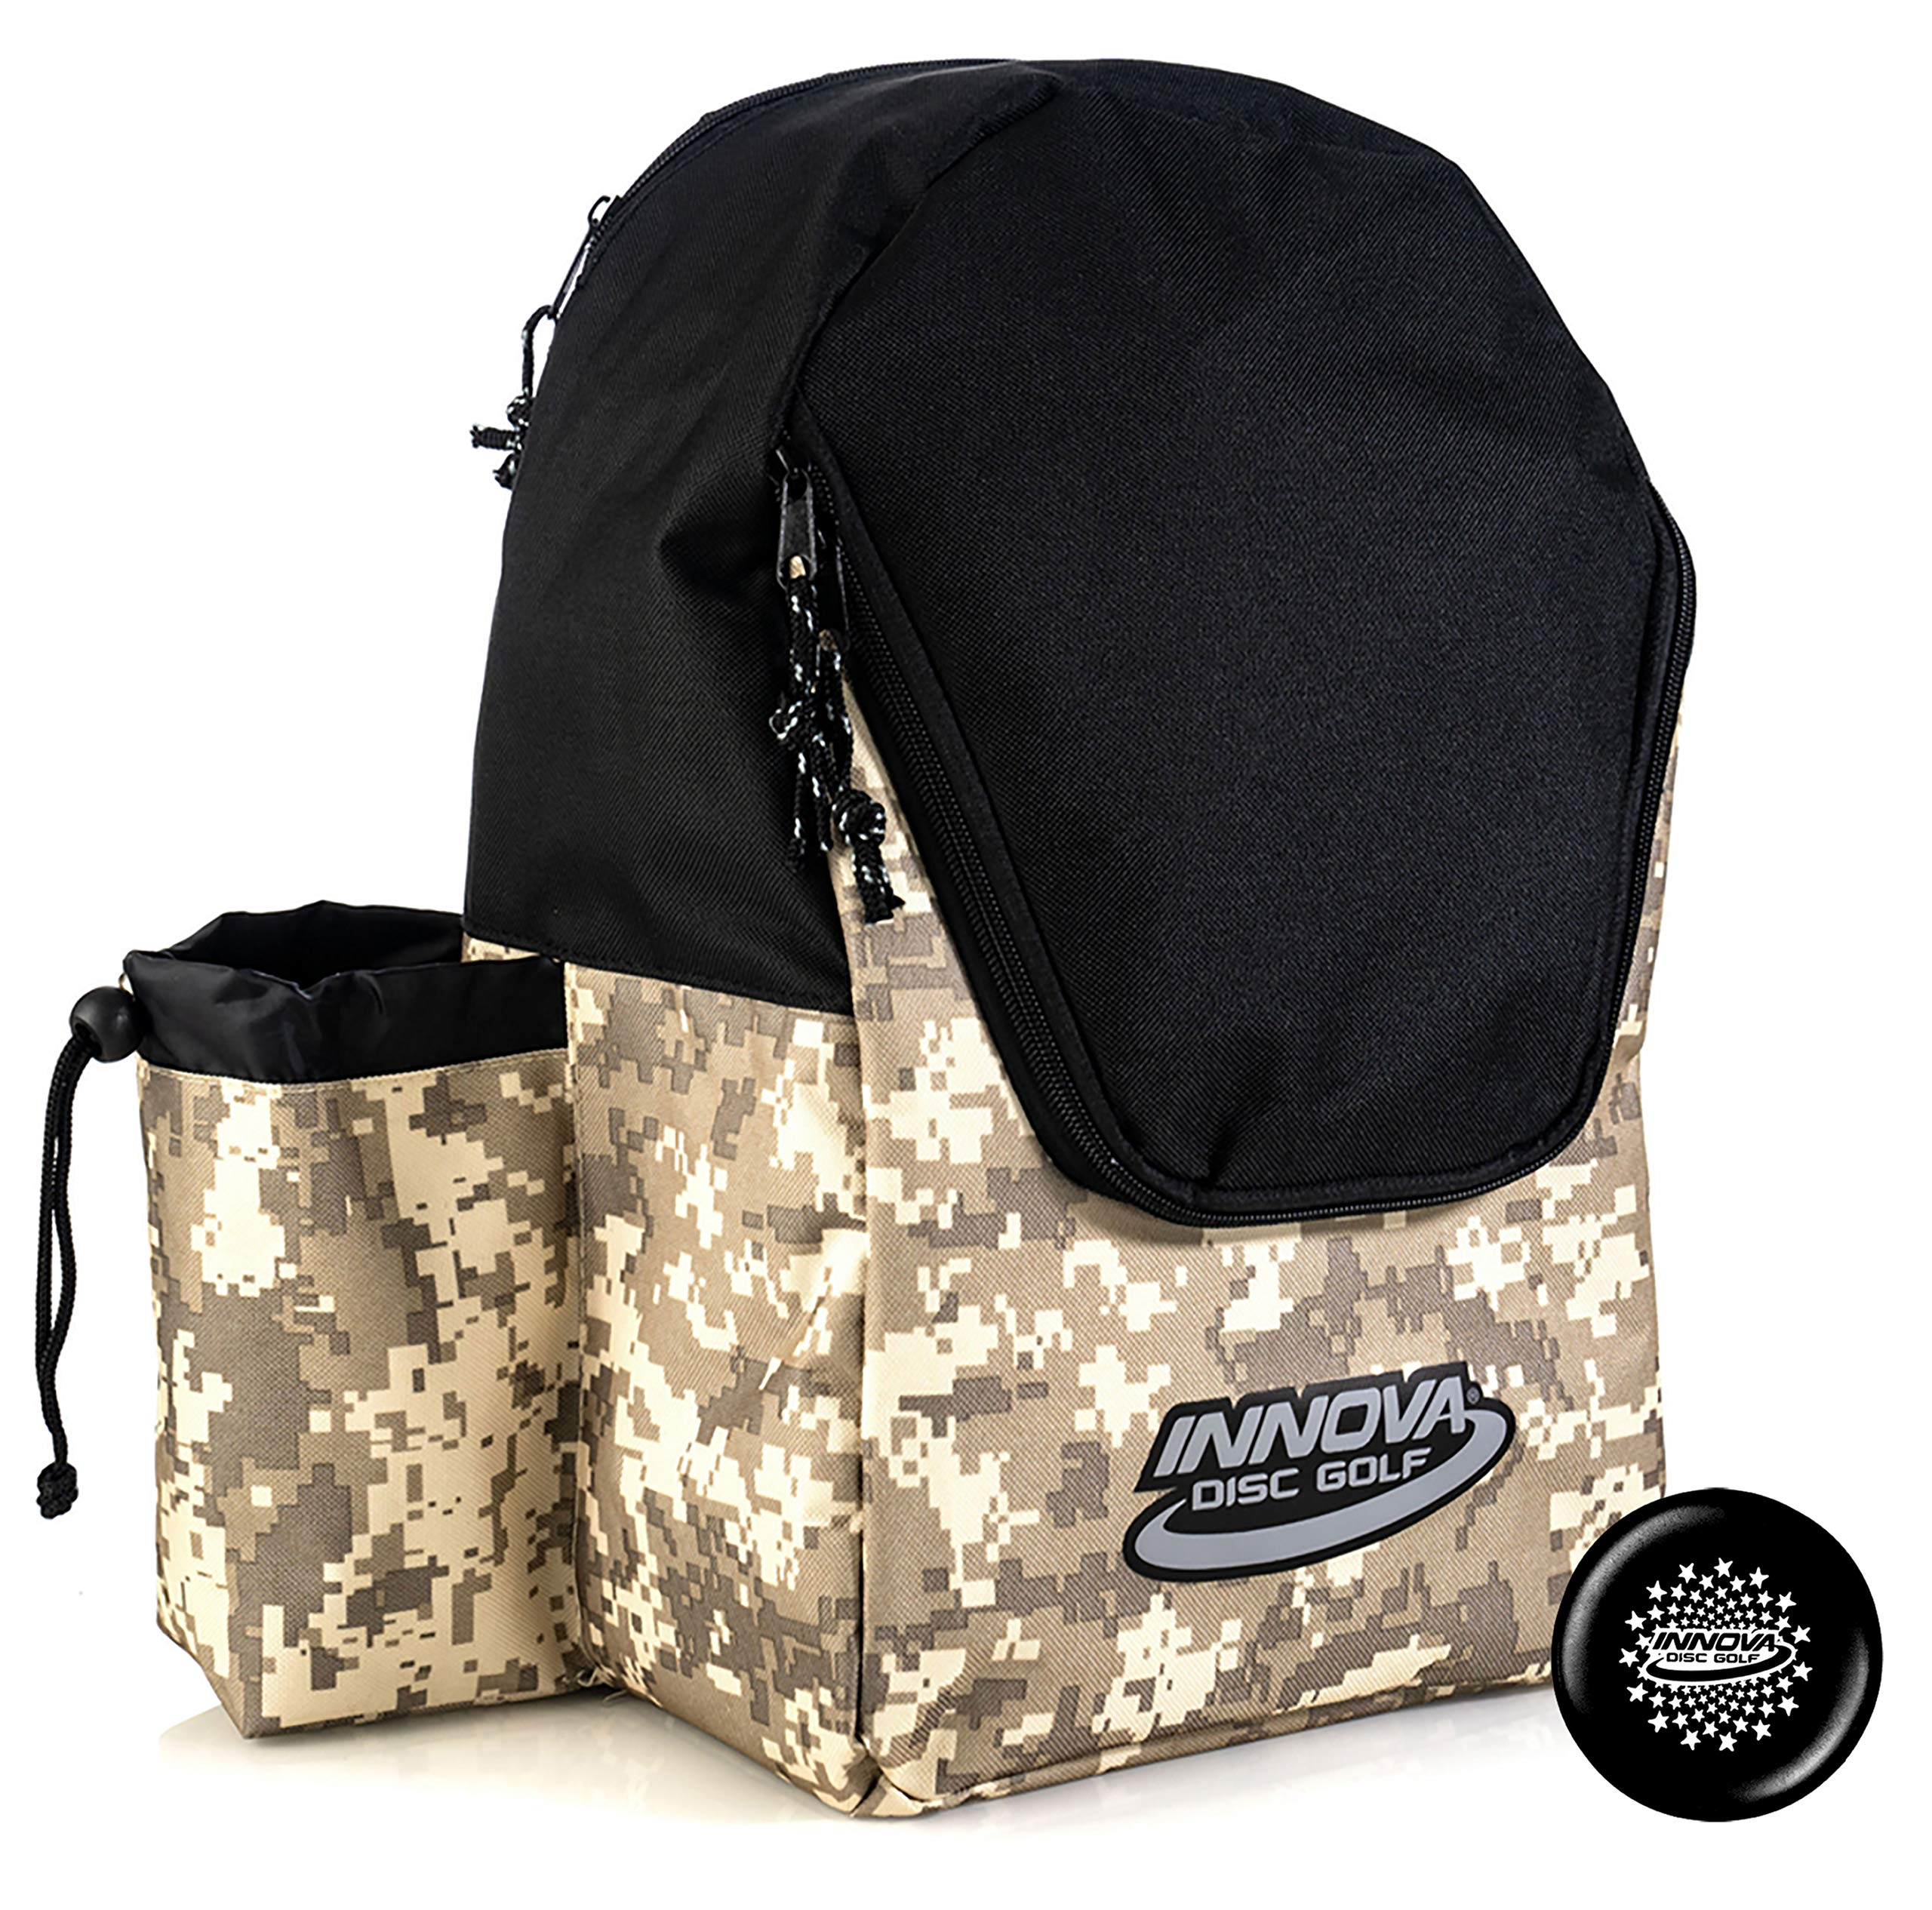 Innova Discover Pack Backpack Disc Golf Bag - Holds 15 Discs - Lightweight Easy to Carry - Includes Innova Limited Edition Stars Mini Marker (Camo/Black) by Innova Discs